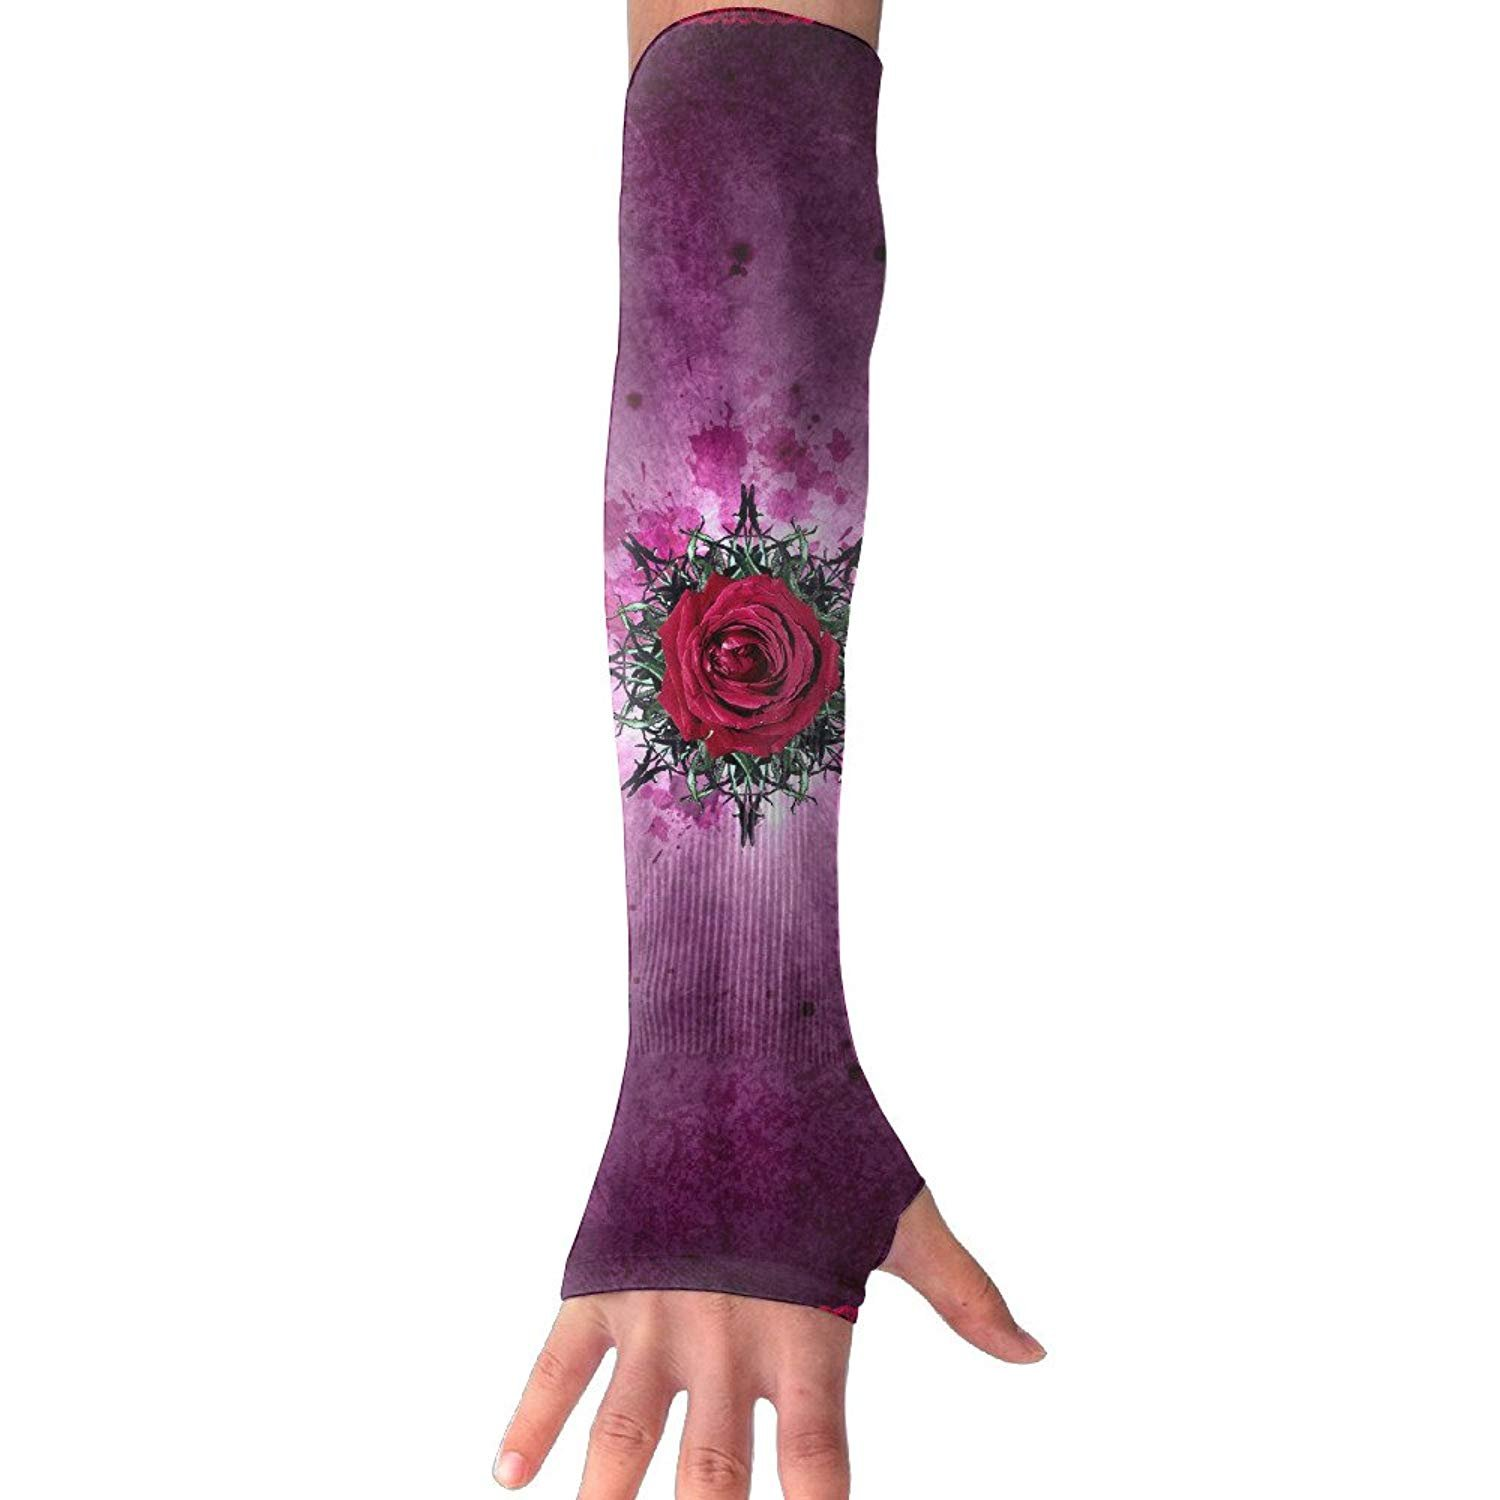 Unisex Rose Border Floral Sense Ice Outdoor Travel Arm Warmer Long Sleeves Glove